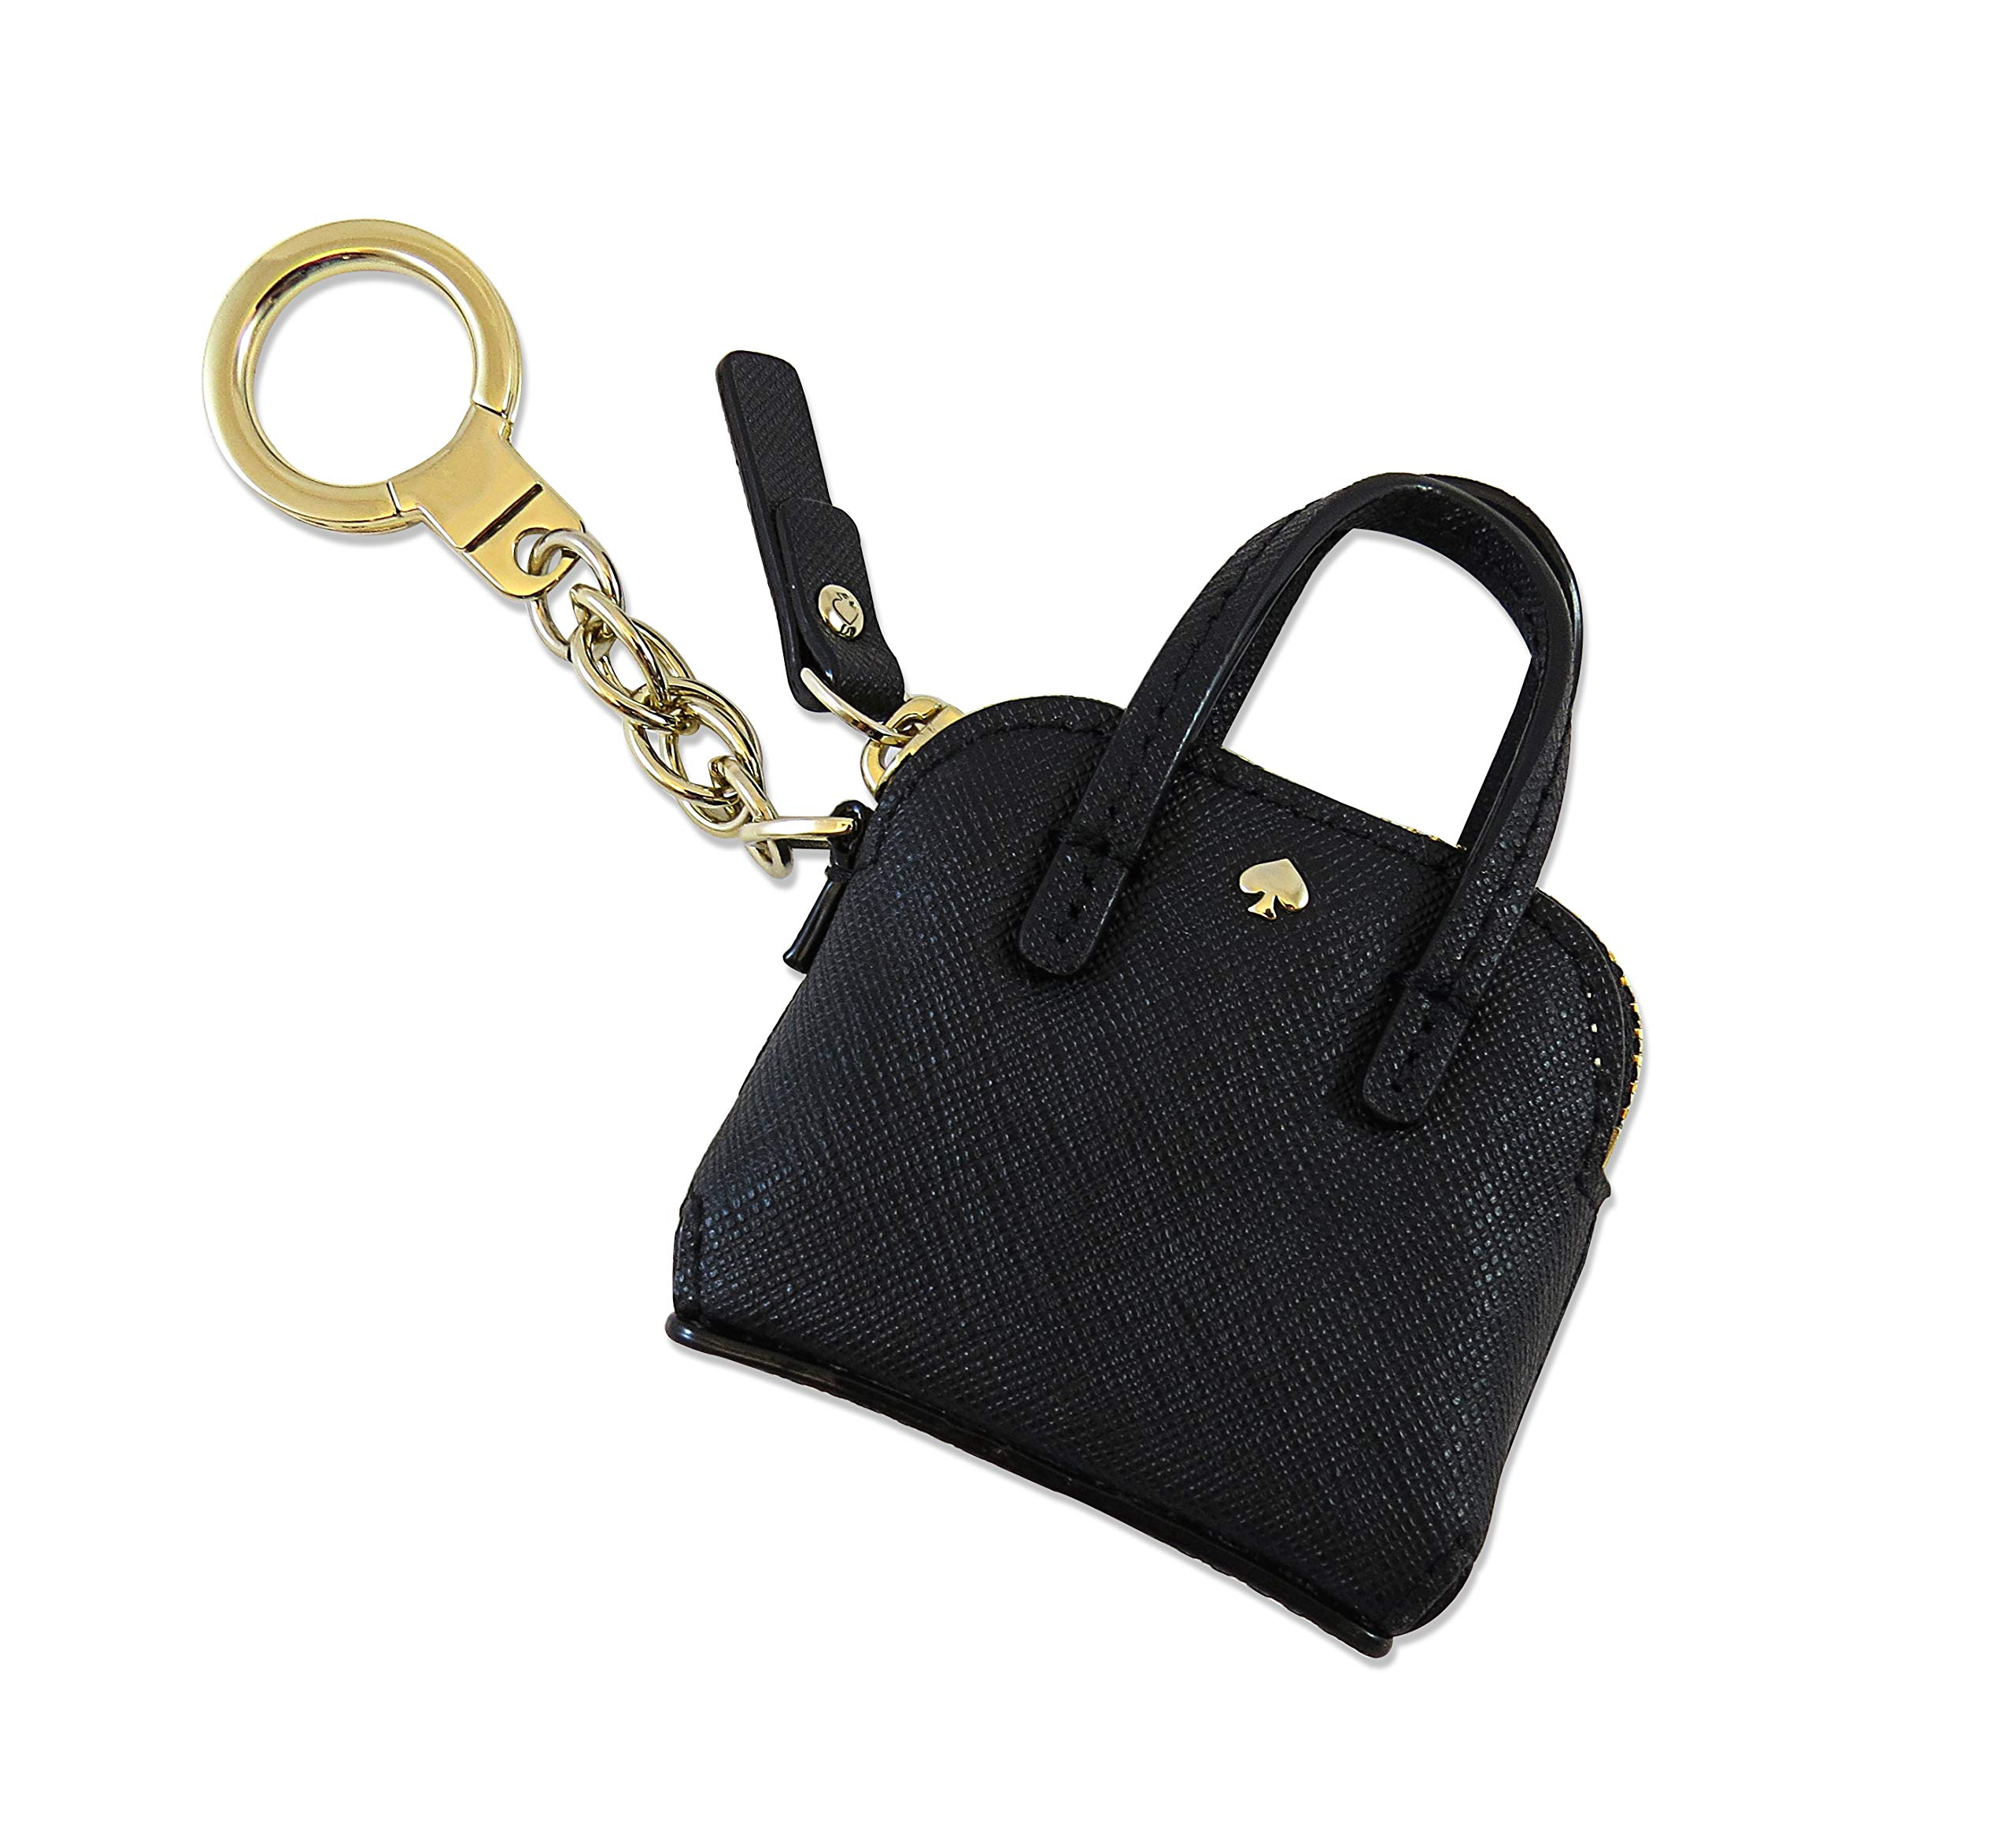 Kate Spade New York Women's Things We Love Maise Keychain, Black, One Size